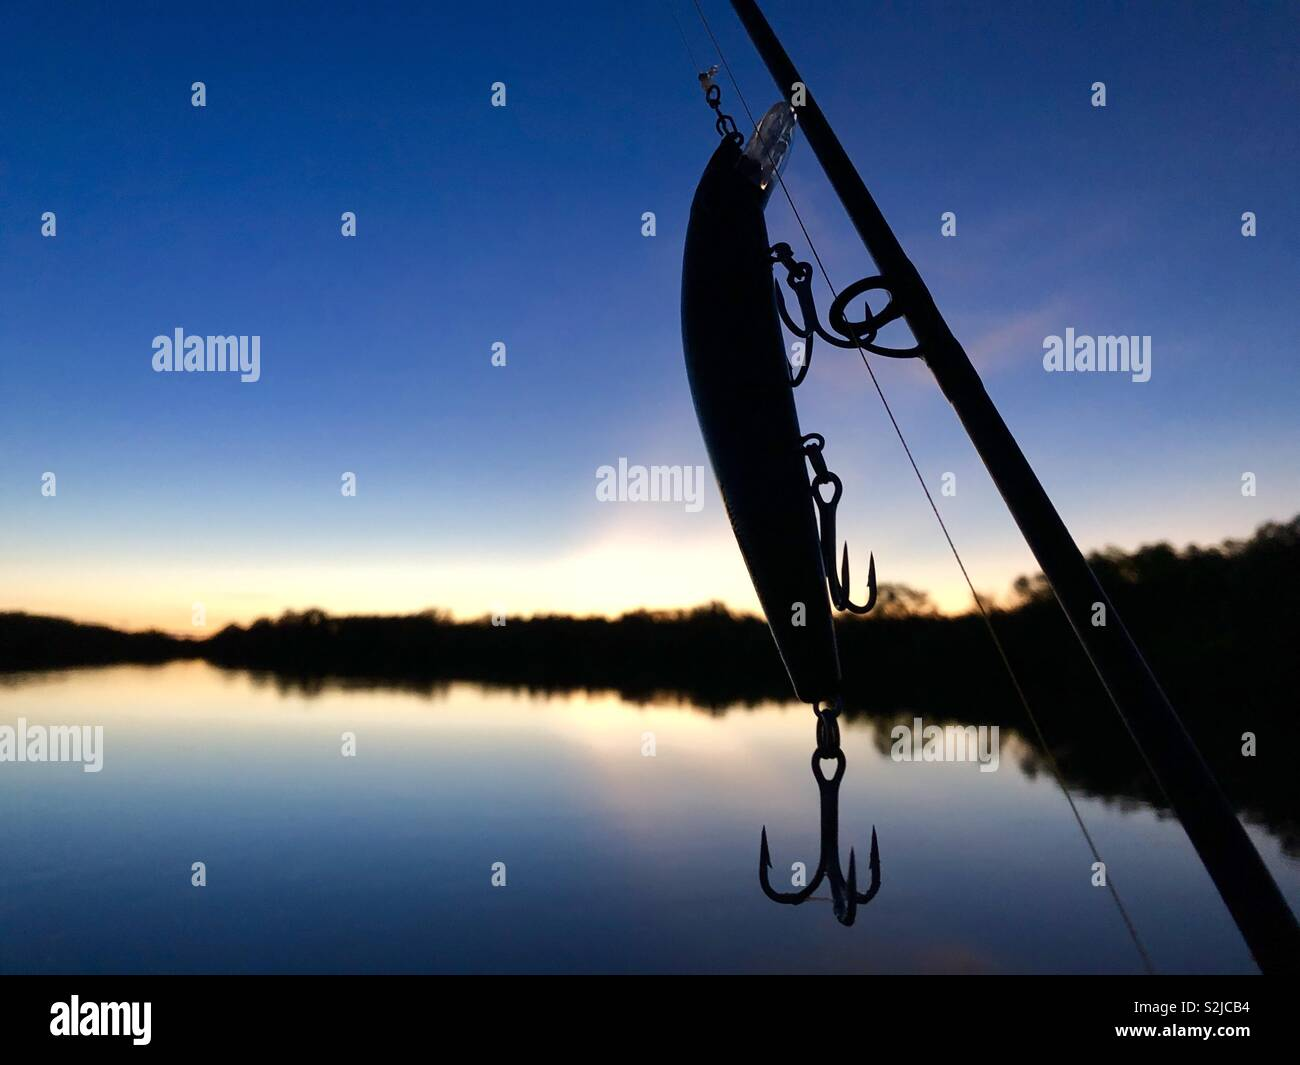 silhouette-of-a-fishing-lure-and-fishing